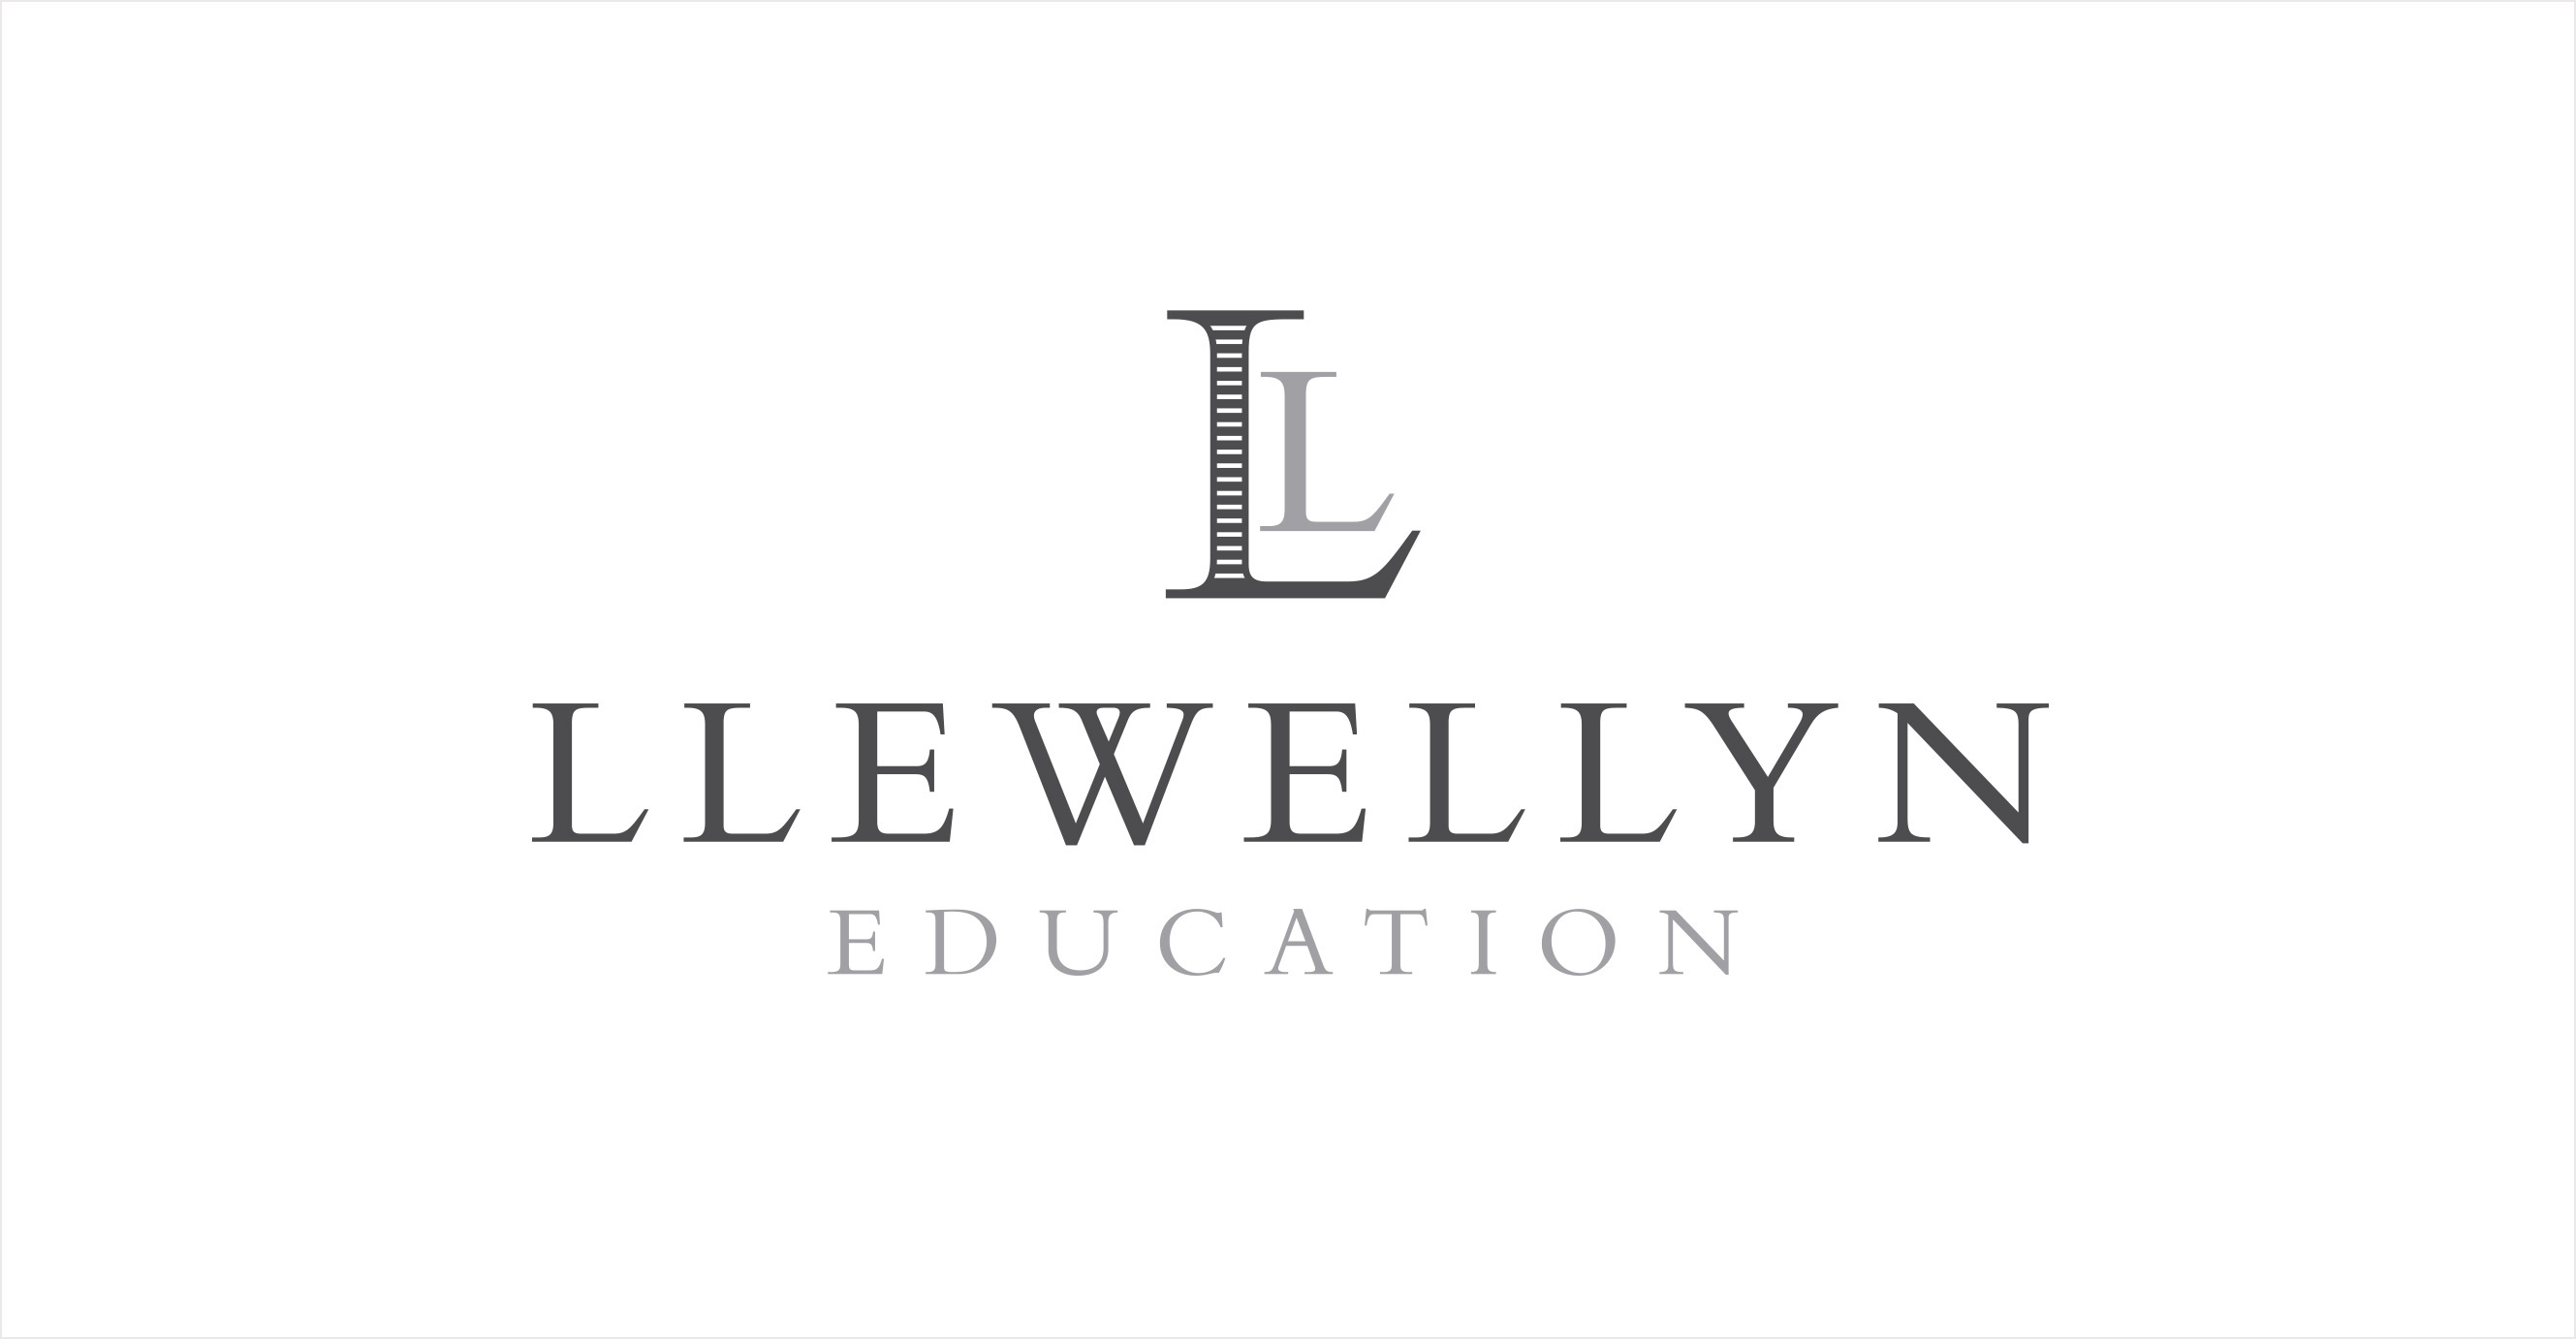 Llewellyn education